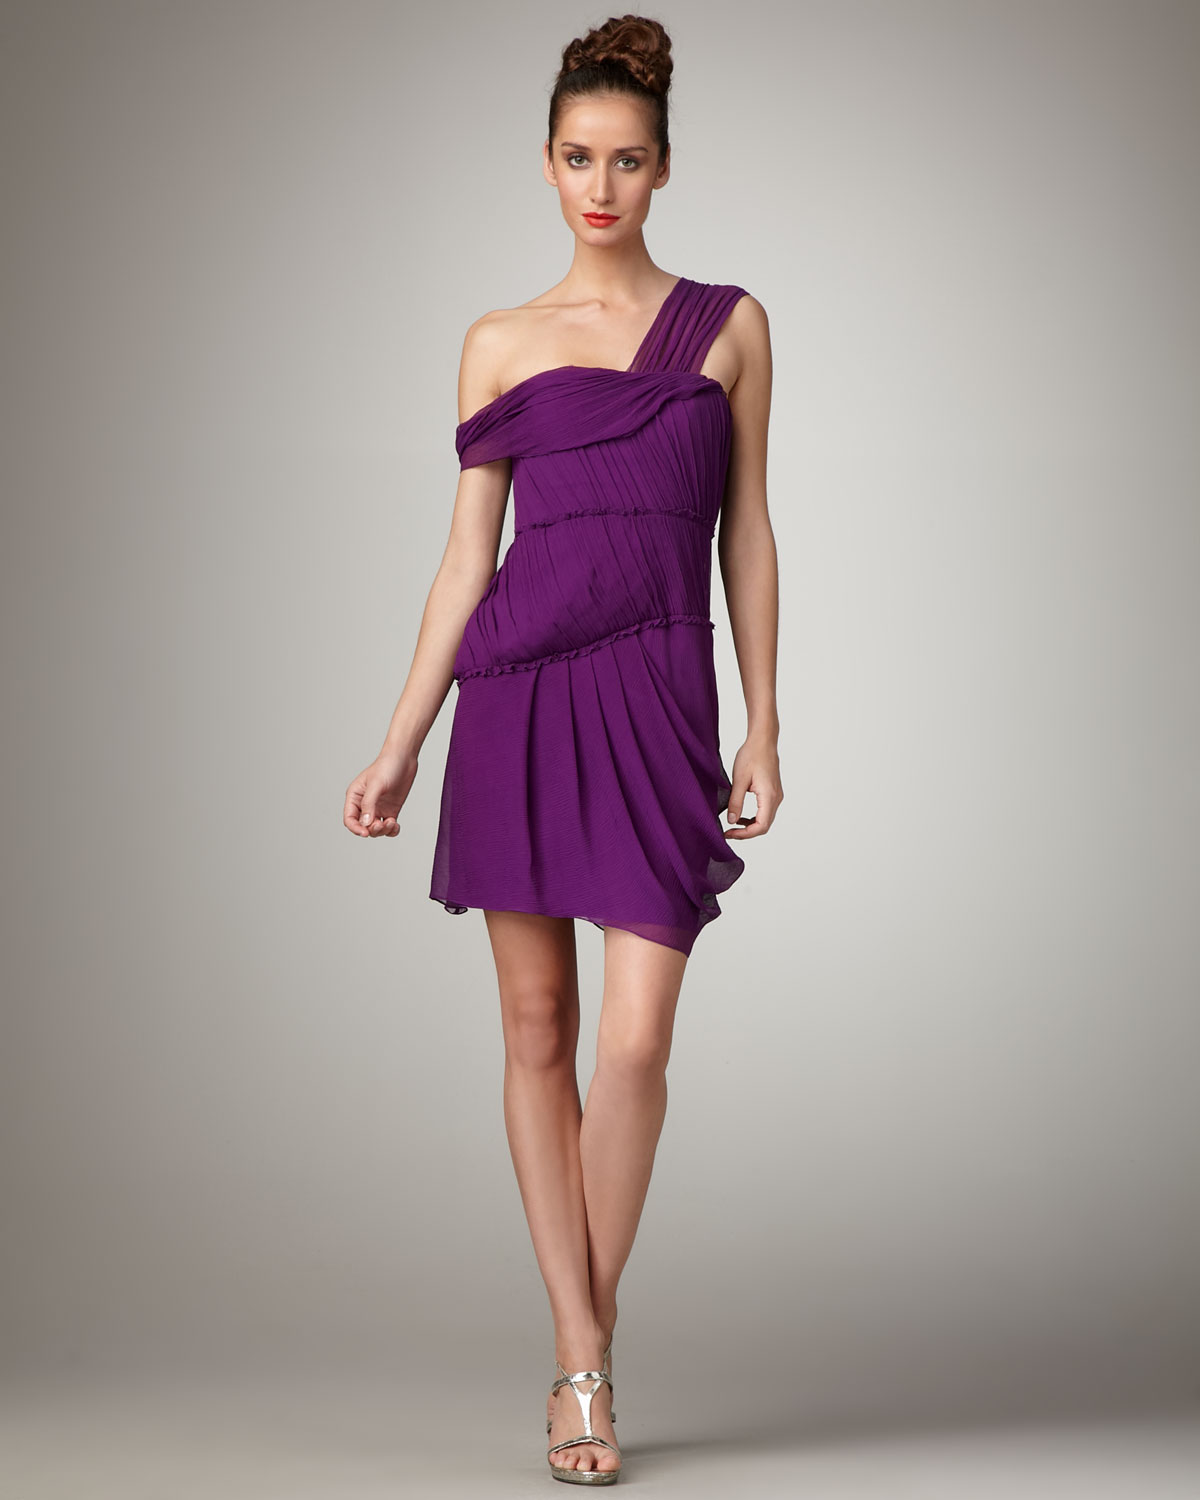 222210bcc1 Vera Wang Lavender Off-the-shoulder Chiffon Dress in Purple - Lyst